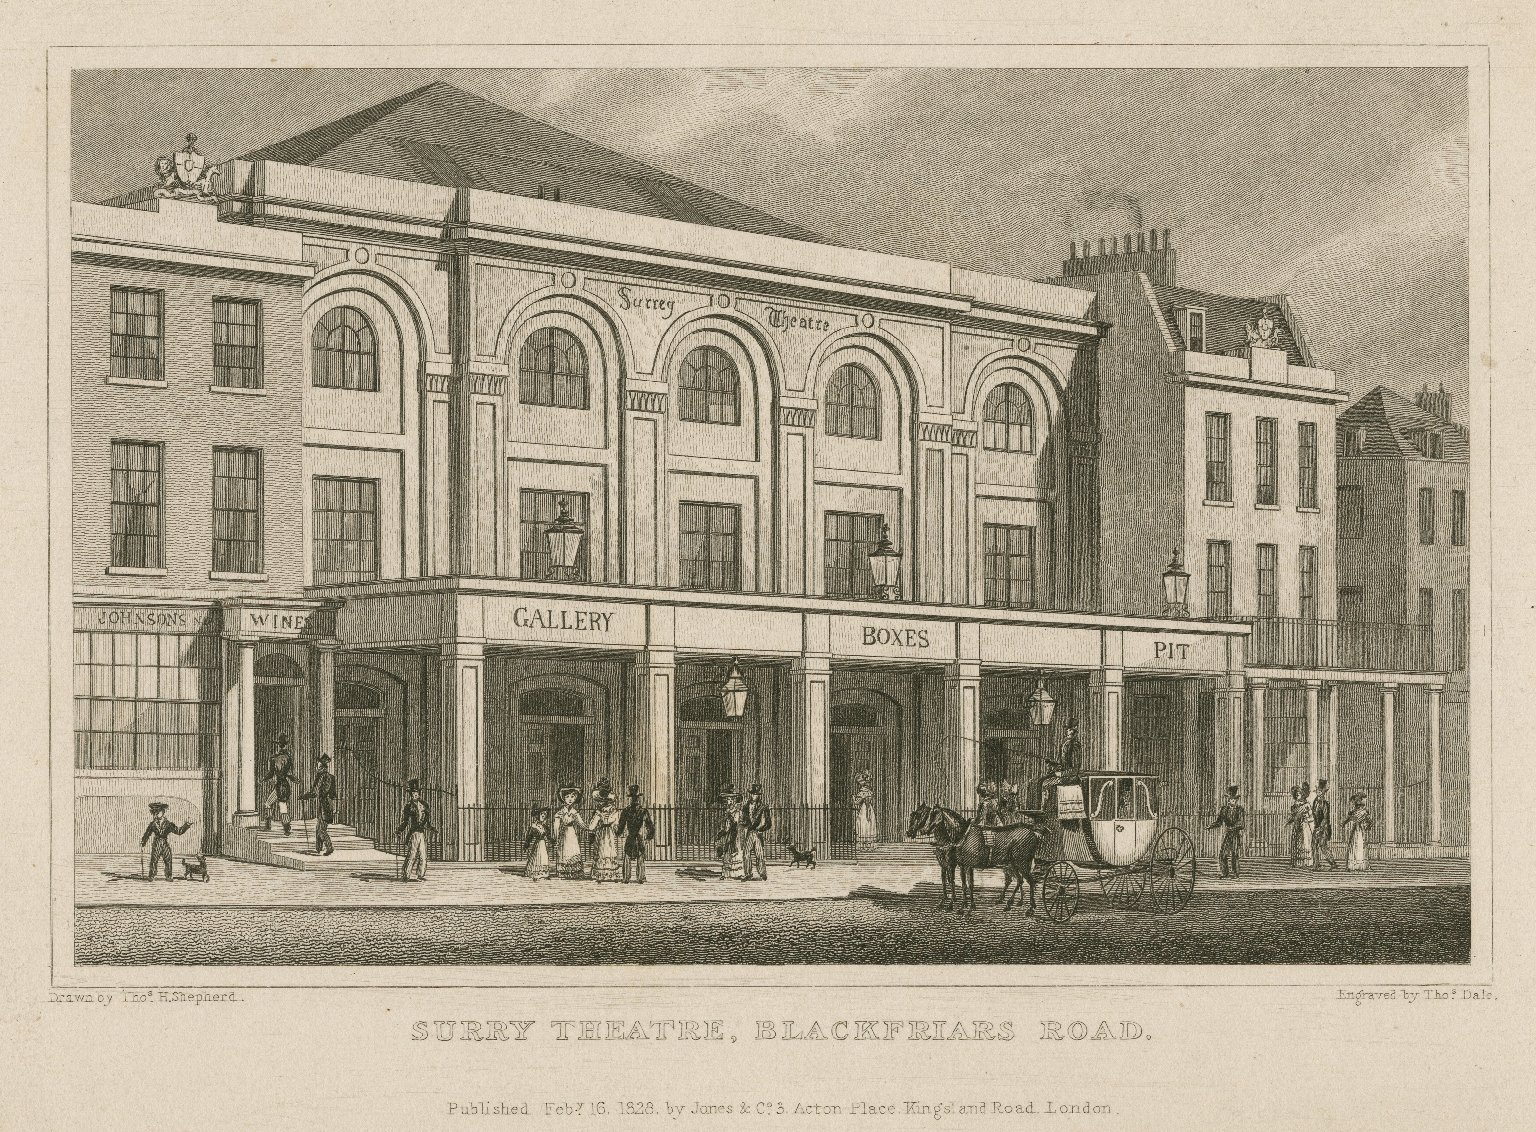 <b>Surrey Theatre, 1828</b>     	</br>Surrey Theatre, Blackfriars Road, London, 1828</br><br/><b>Source: </b><i>Thomas H. Shepard, Surry Theatre, Blackfriars Road (Call number: ART File L847t1 S2 no.1), 1828, Folger Digital Image Collection, University of Cincinnati Libraries Digital Collections, University of Cincinnati, http://digproj.libraries.uc.edu:8180/luna/servlet/s/v1k918</i>